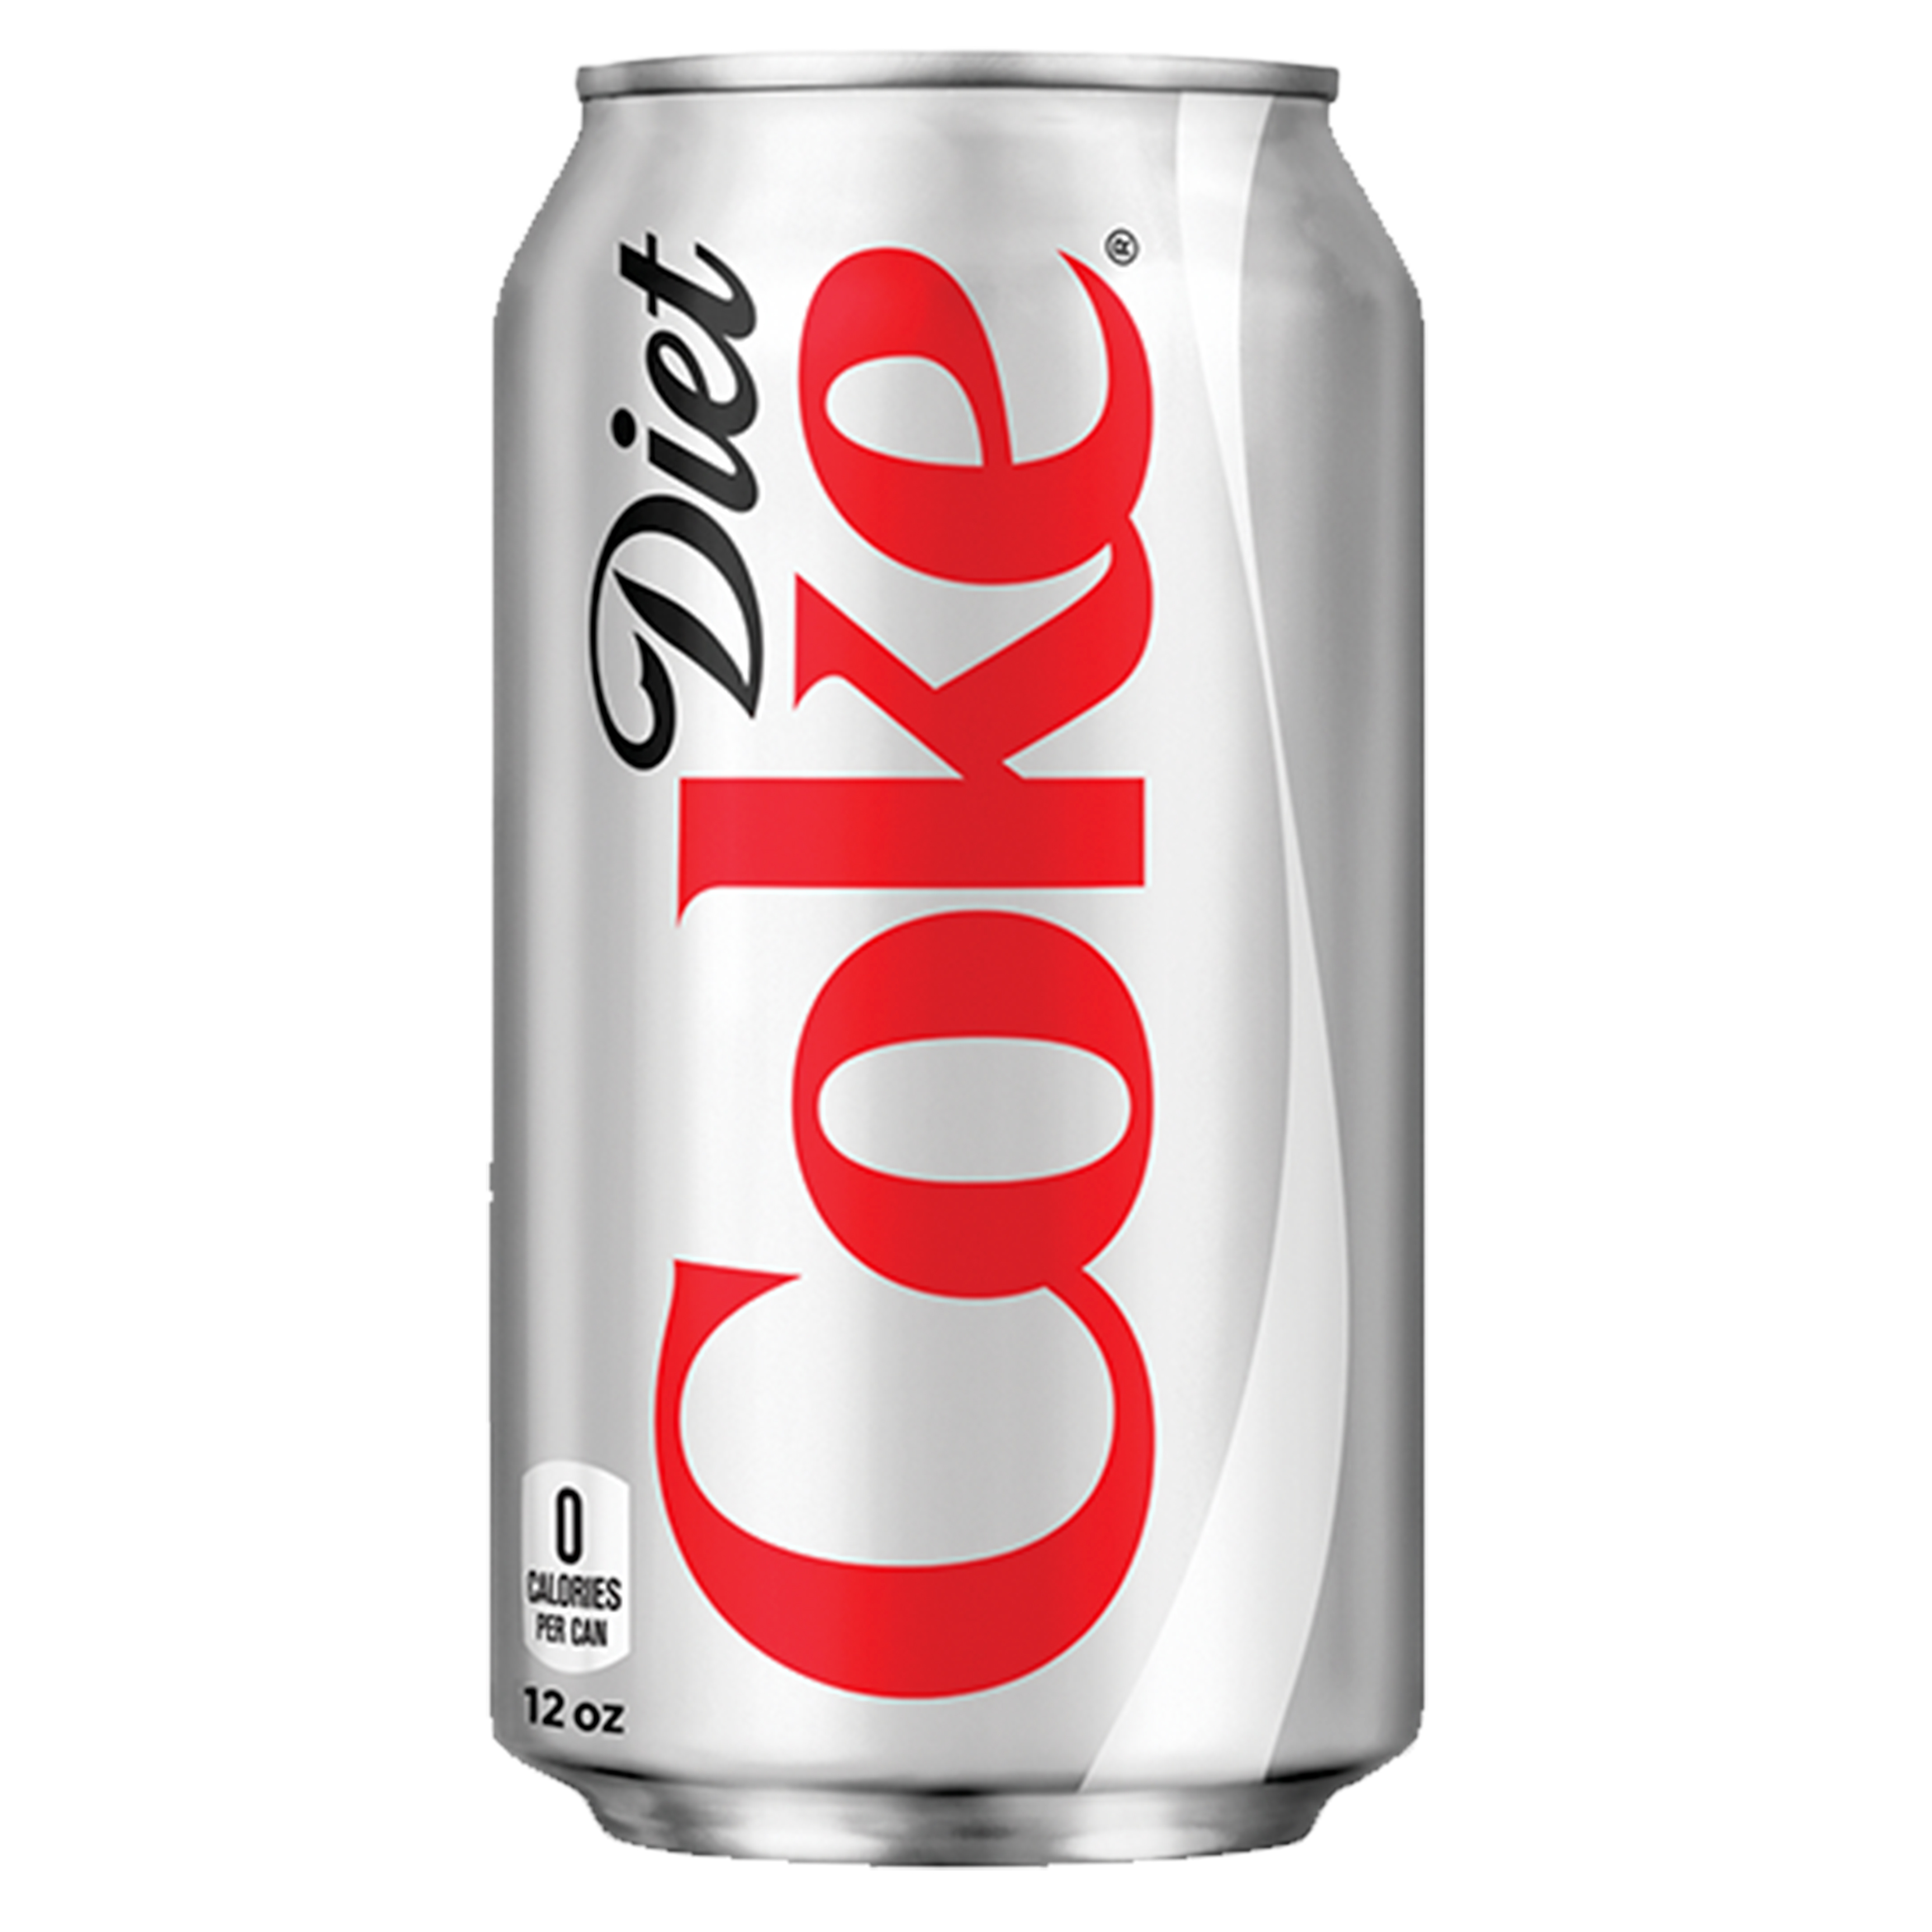 Diet Coke Image